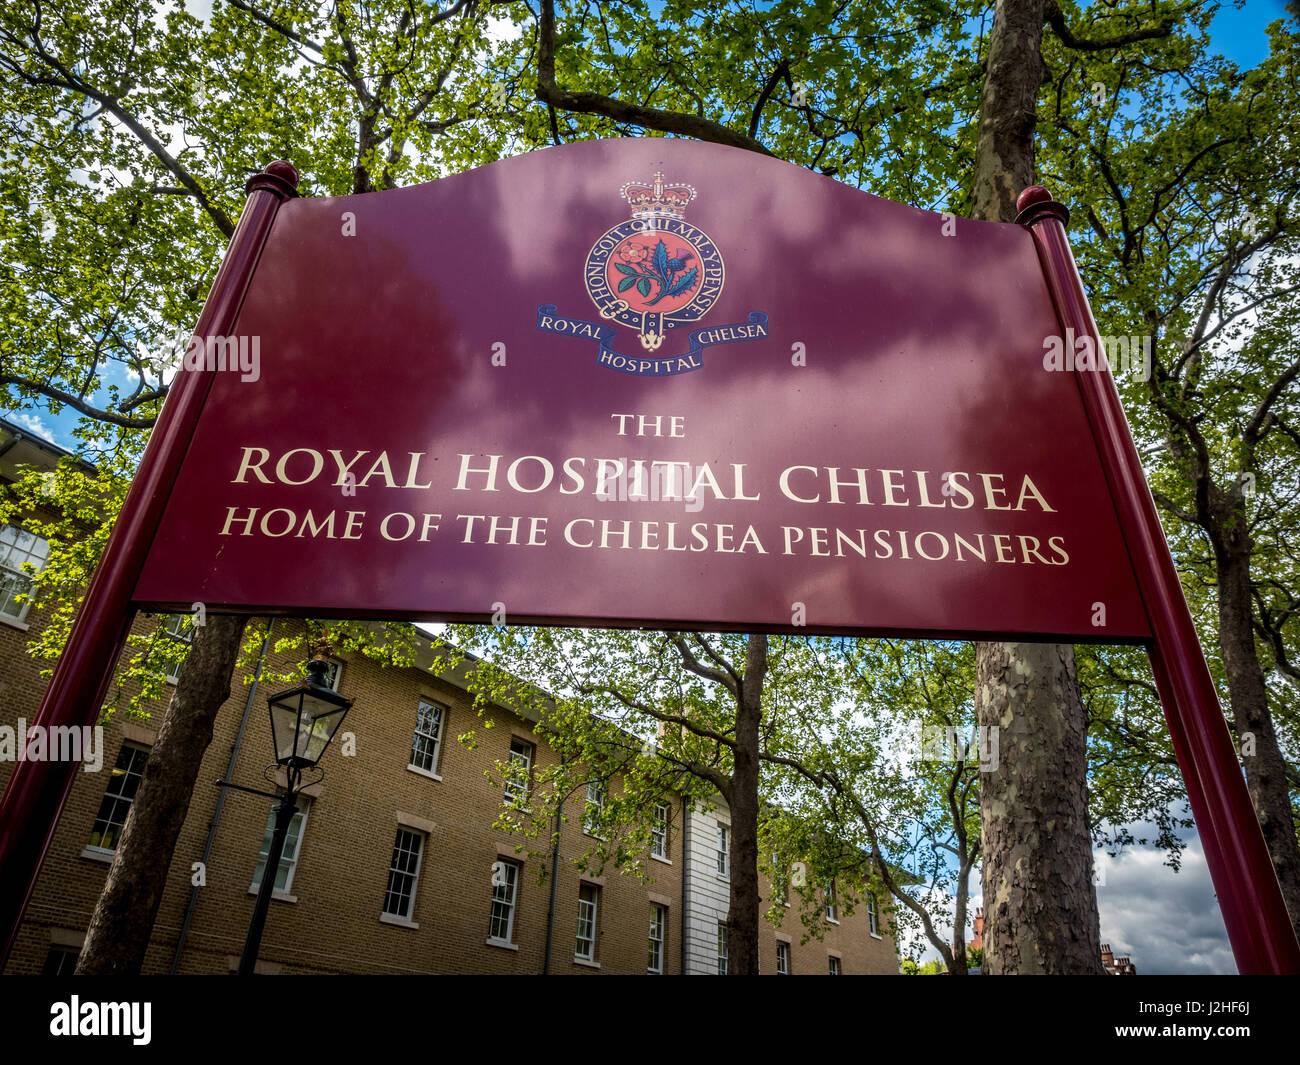 Royal Hospital Chelsea, Heimat der Chelsea-Rentner-London, UK. Stockbild